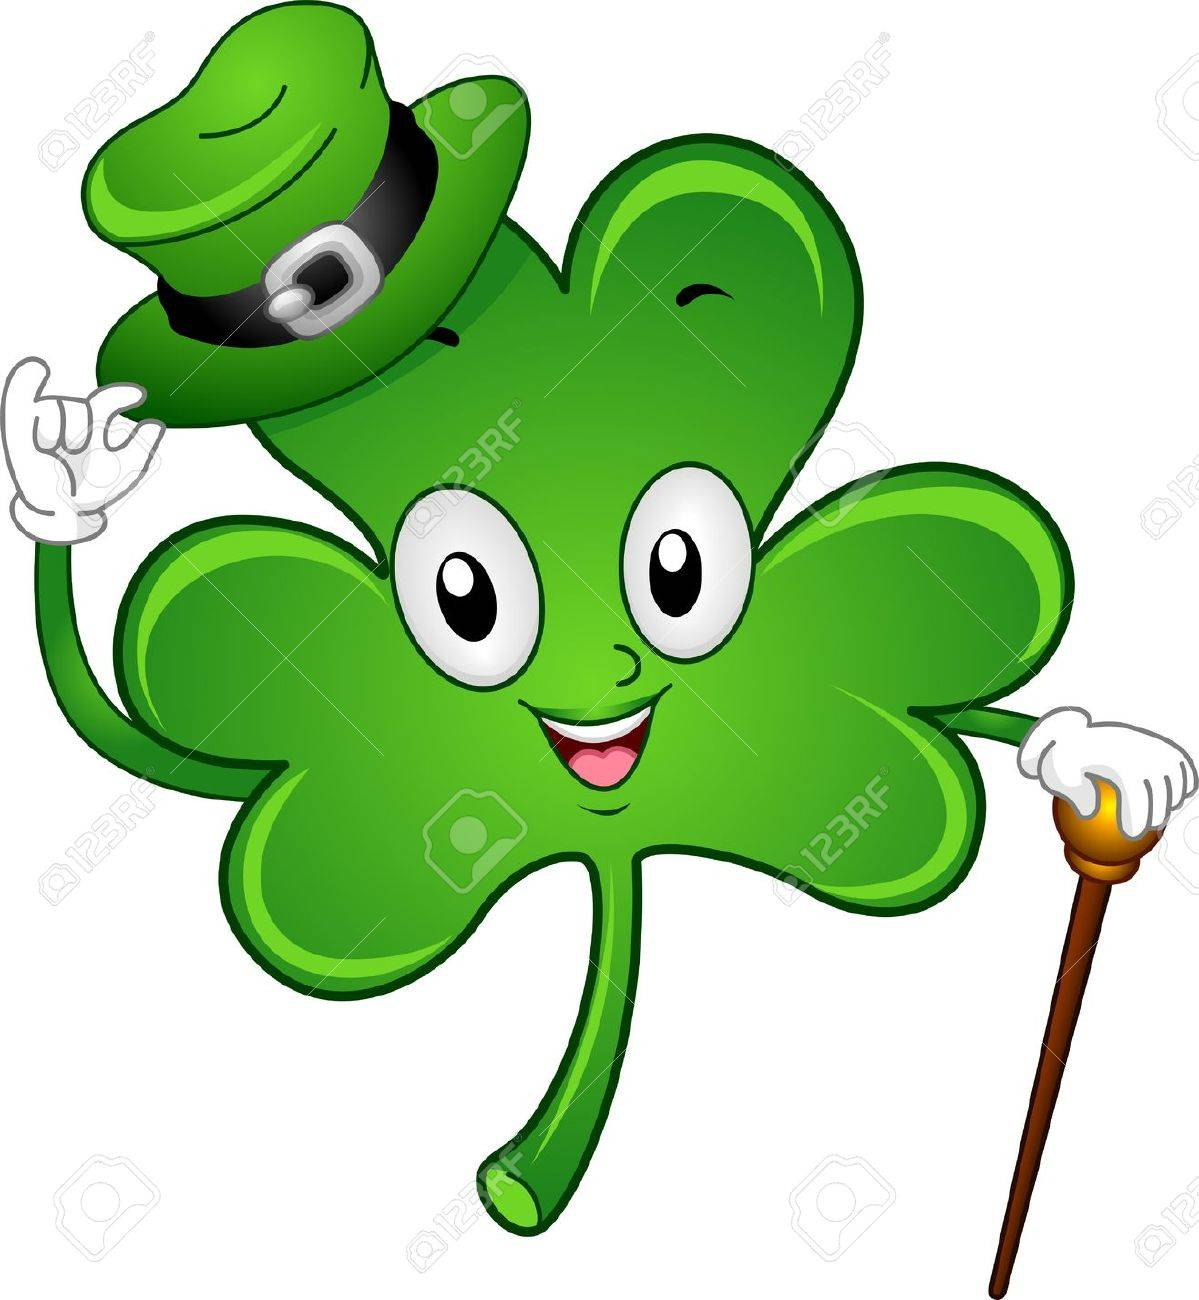 illustration of a gentlemanly shamrock mascot stock photo picture